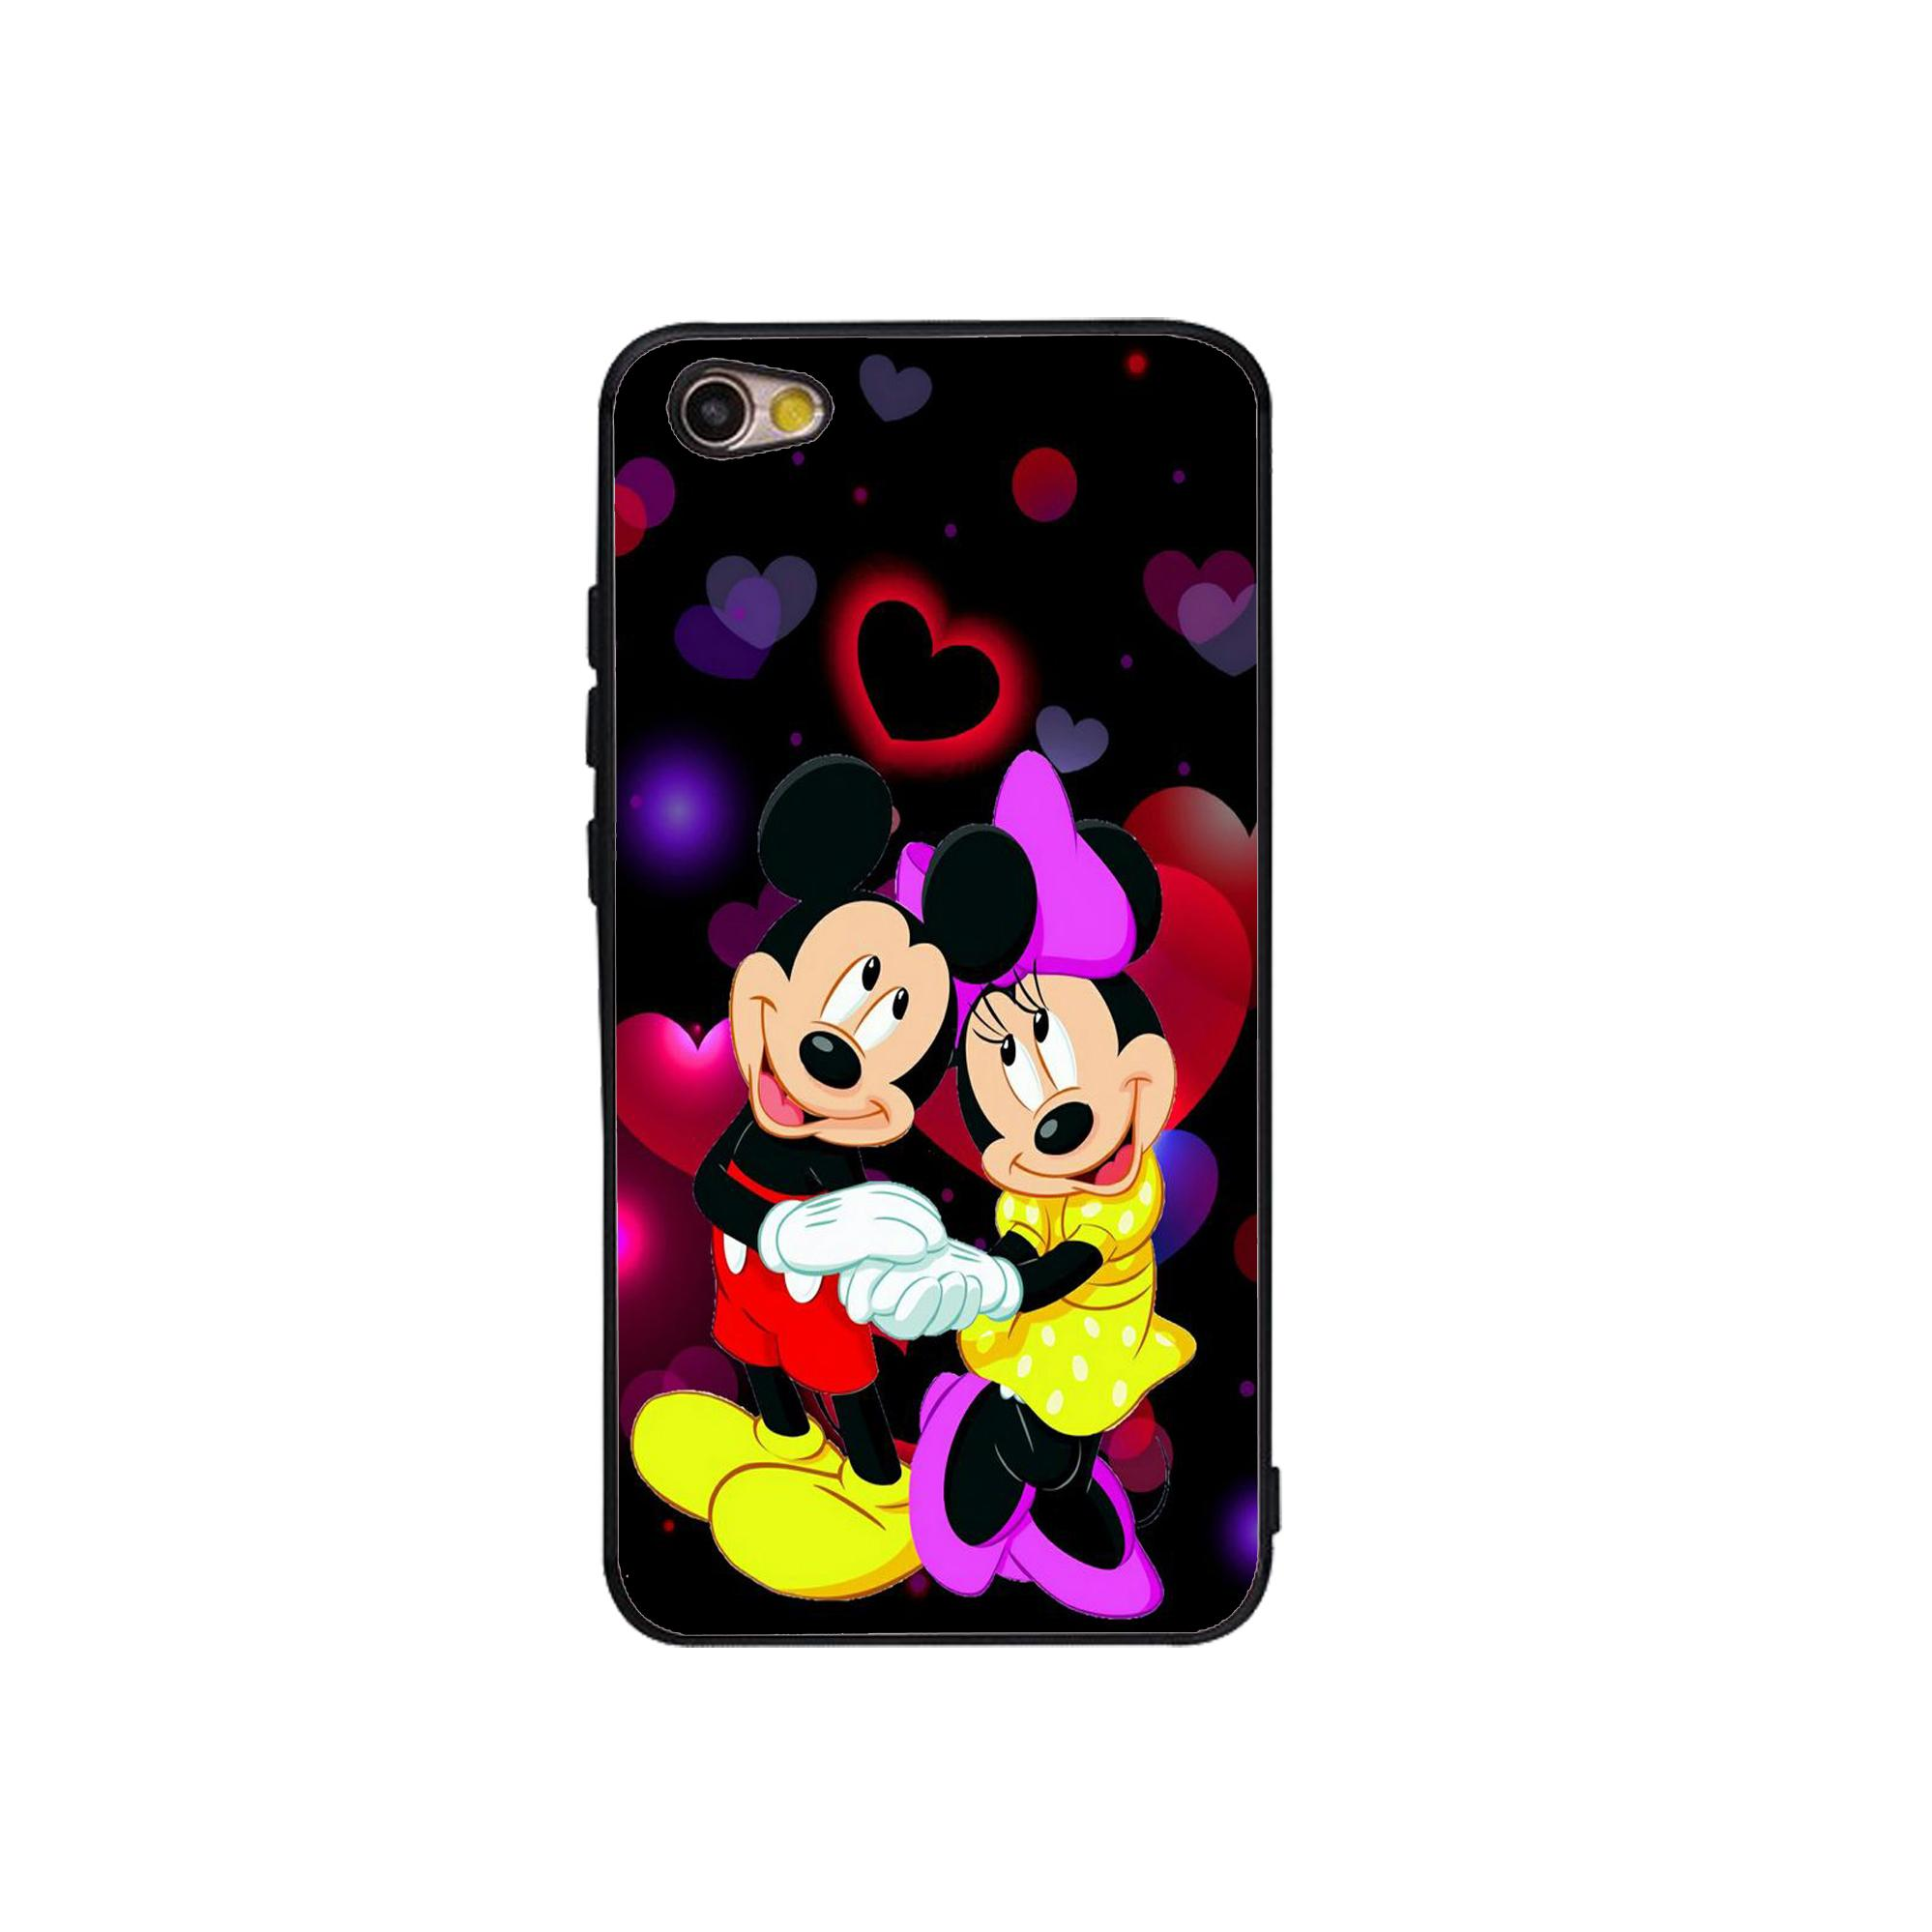 intristore fashion printing case vivo y55 - 003